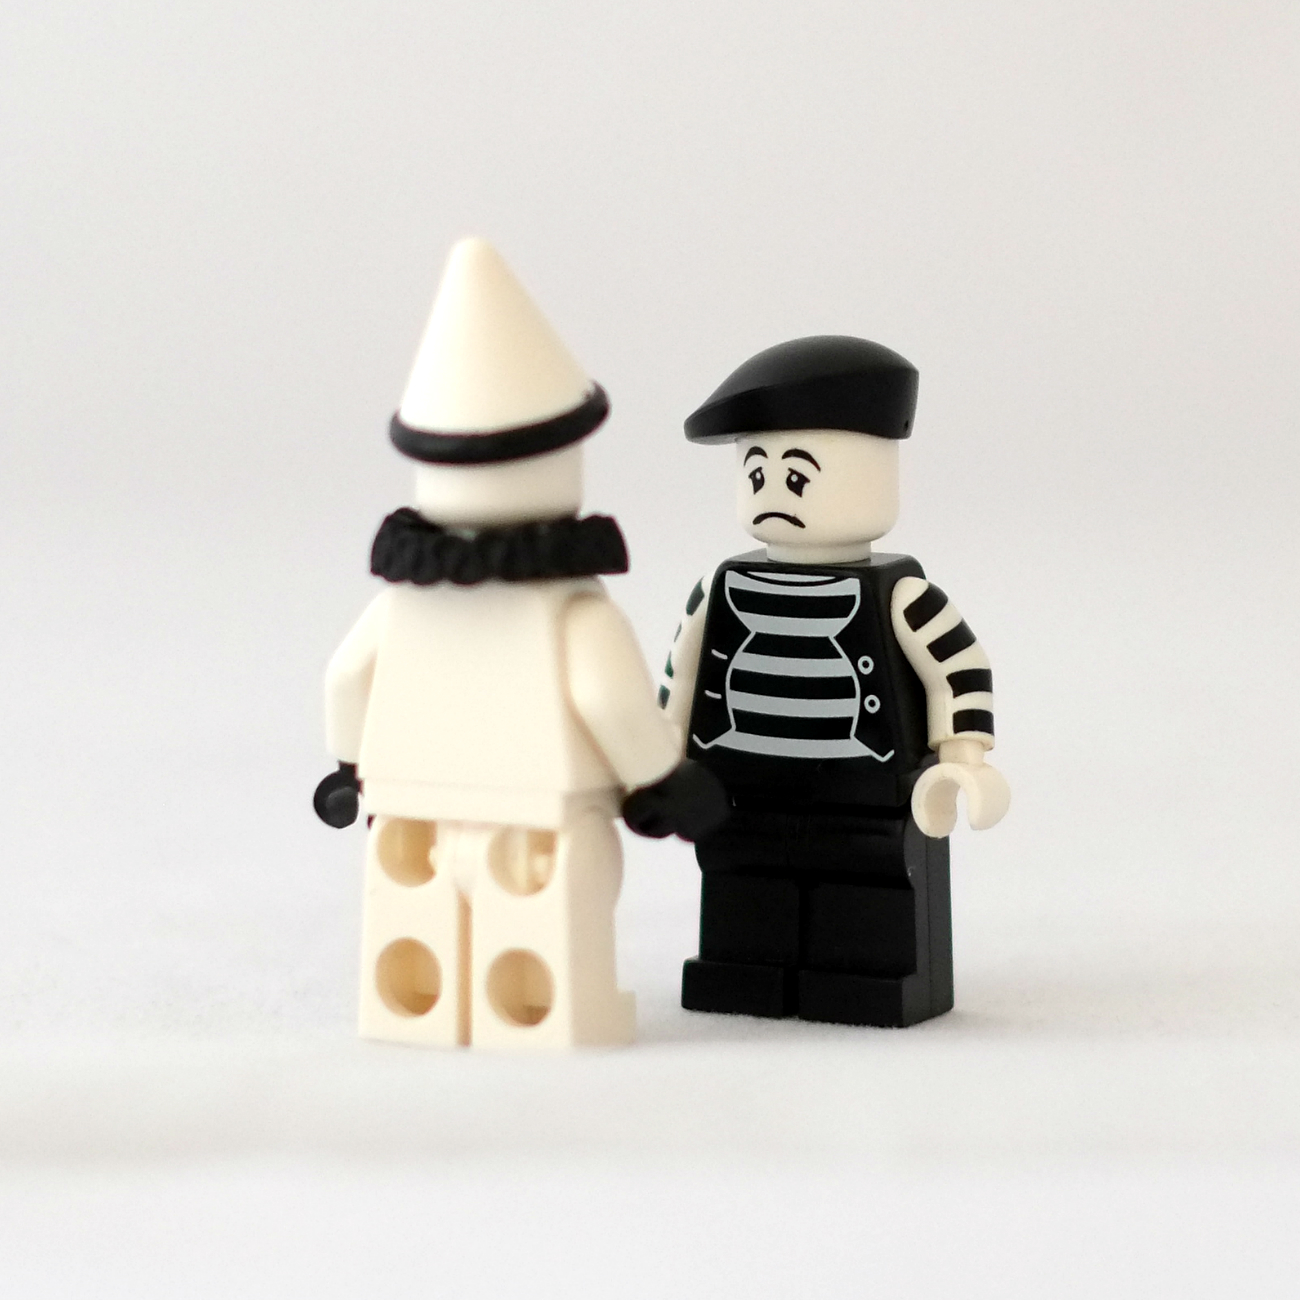 The Mime Crime